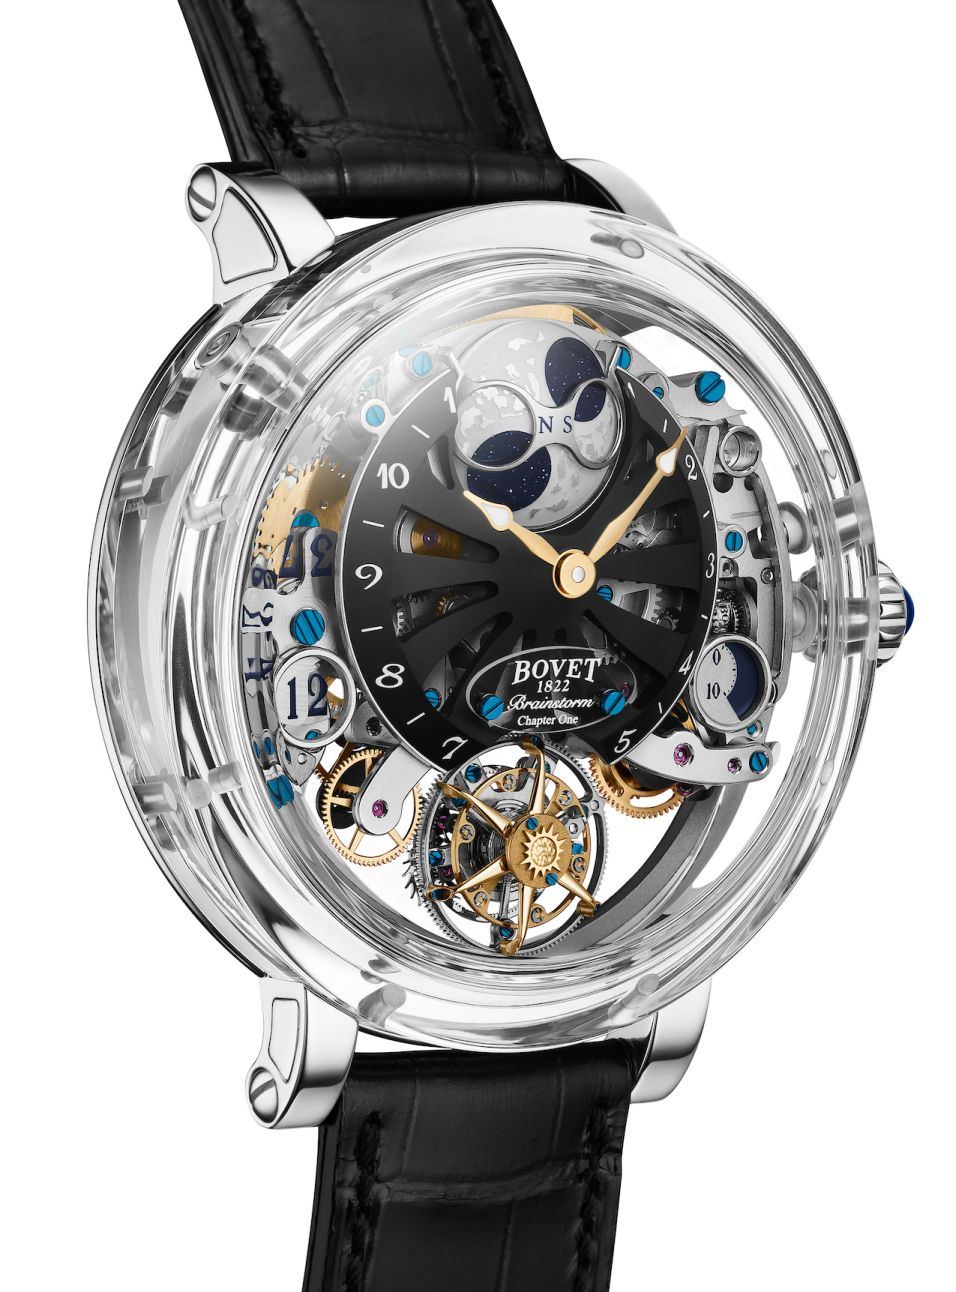 Bovet sapphire crystal case, Bovet Recital 26 Brainstorm Chapter One, Bovet Recital 26, Recital 26